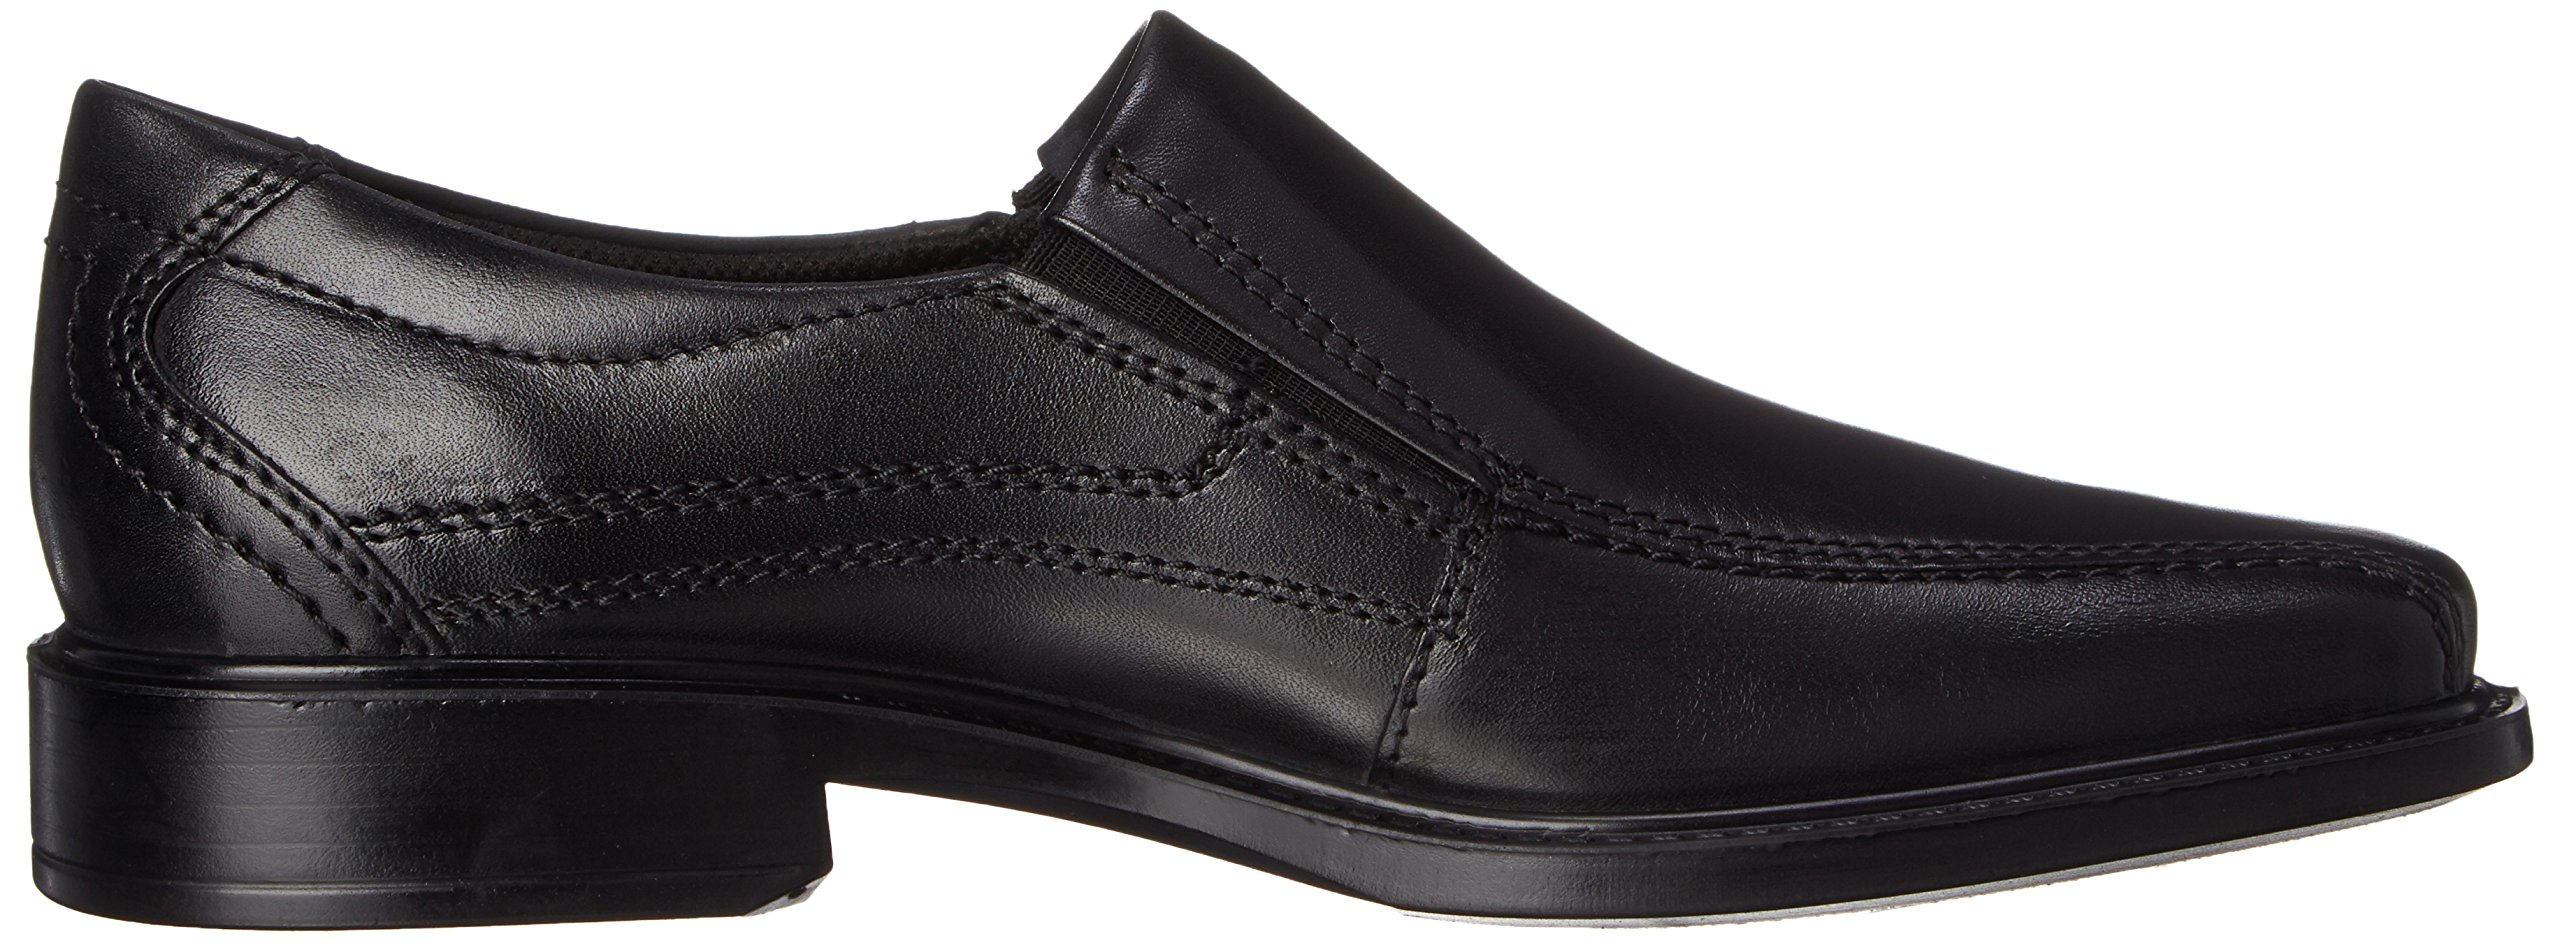 ECCO Men's New Jersey Slip On,Black,39 EU (US Men's 5-5.5 M) by ECCO (Image #8)